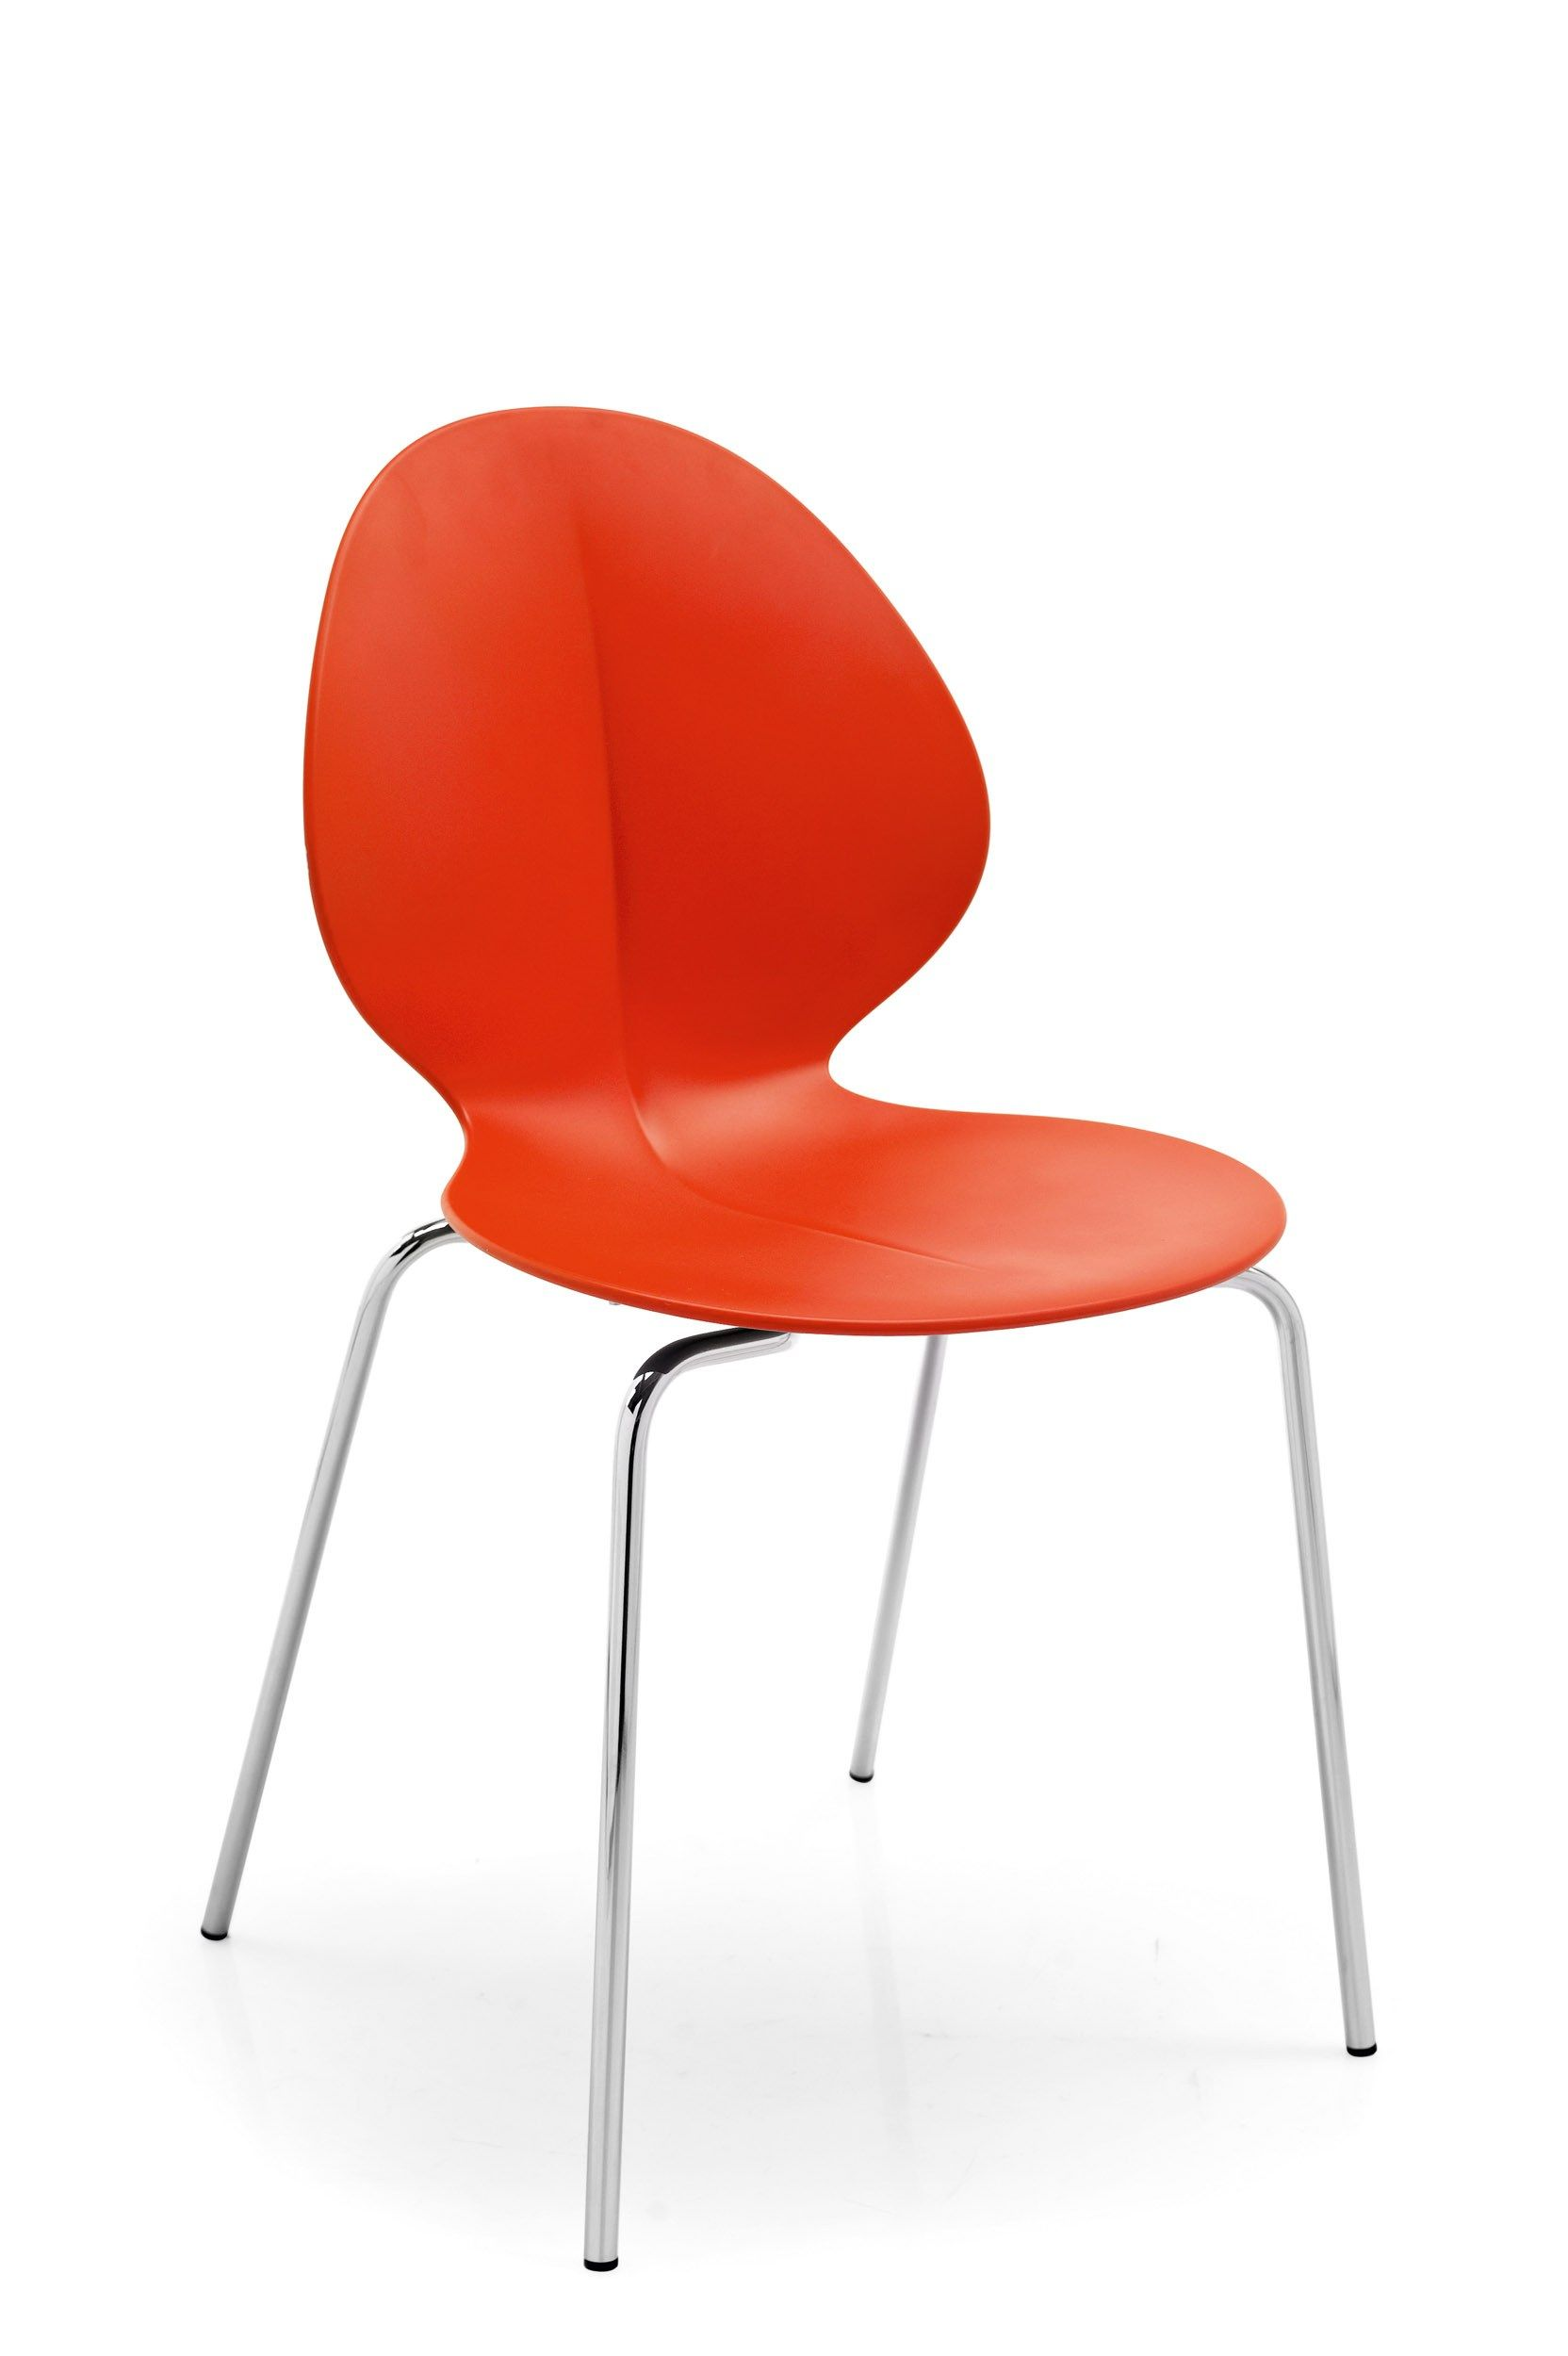 Basil Stackable Chair By Calligaris Design Mr Smith Studio S T C